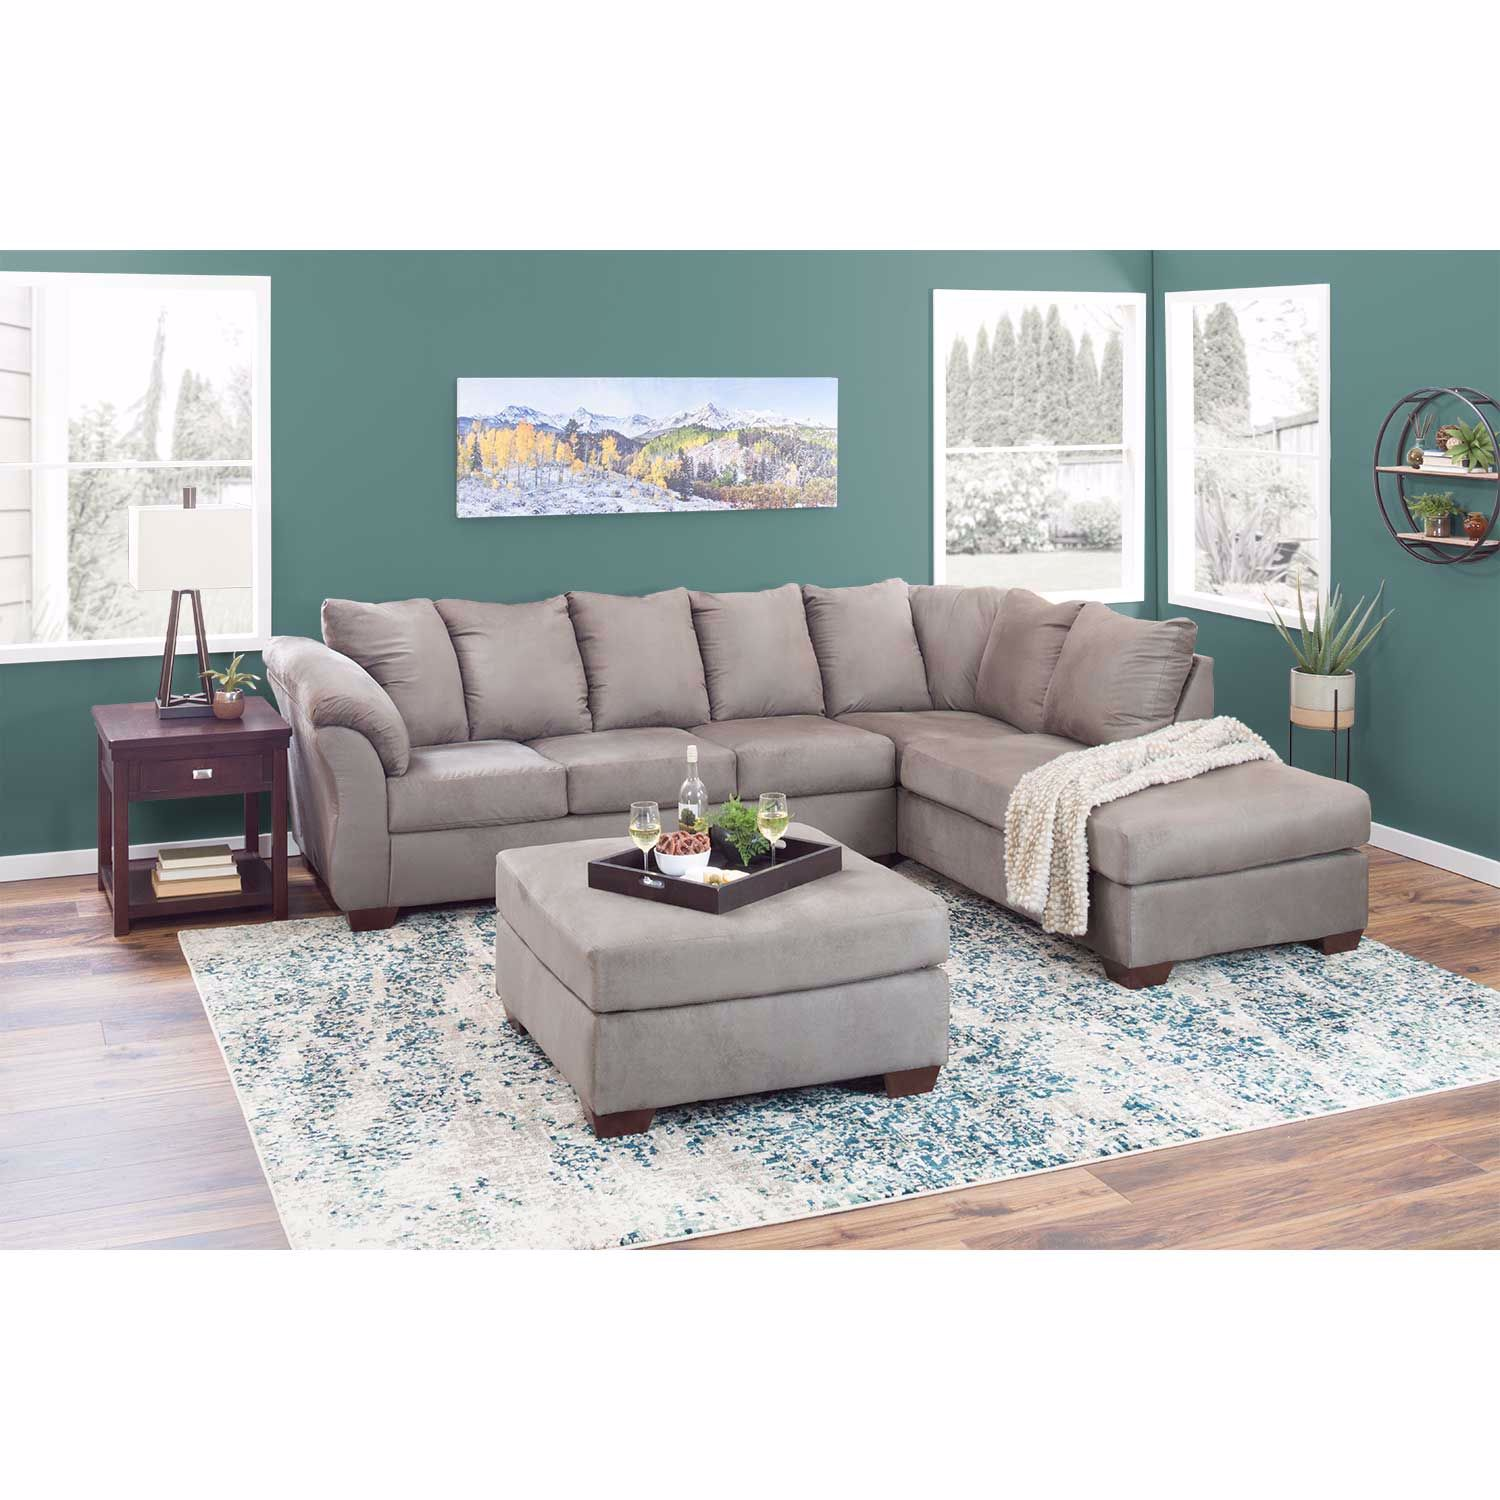 Darcy Cobblestone Gray 2 Piece Sectional w/ RAF Chaise ...